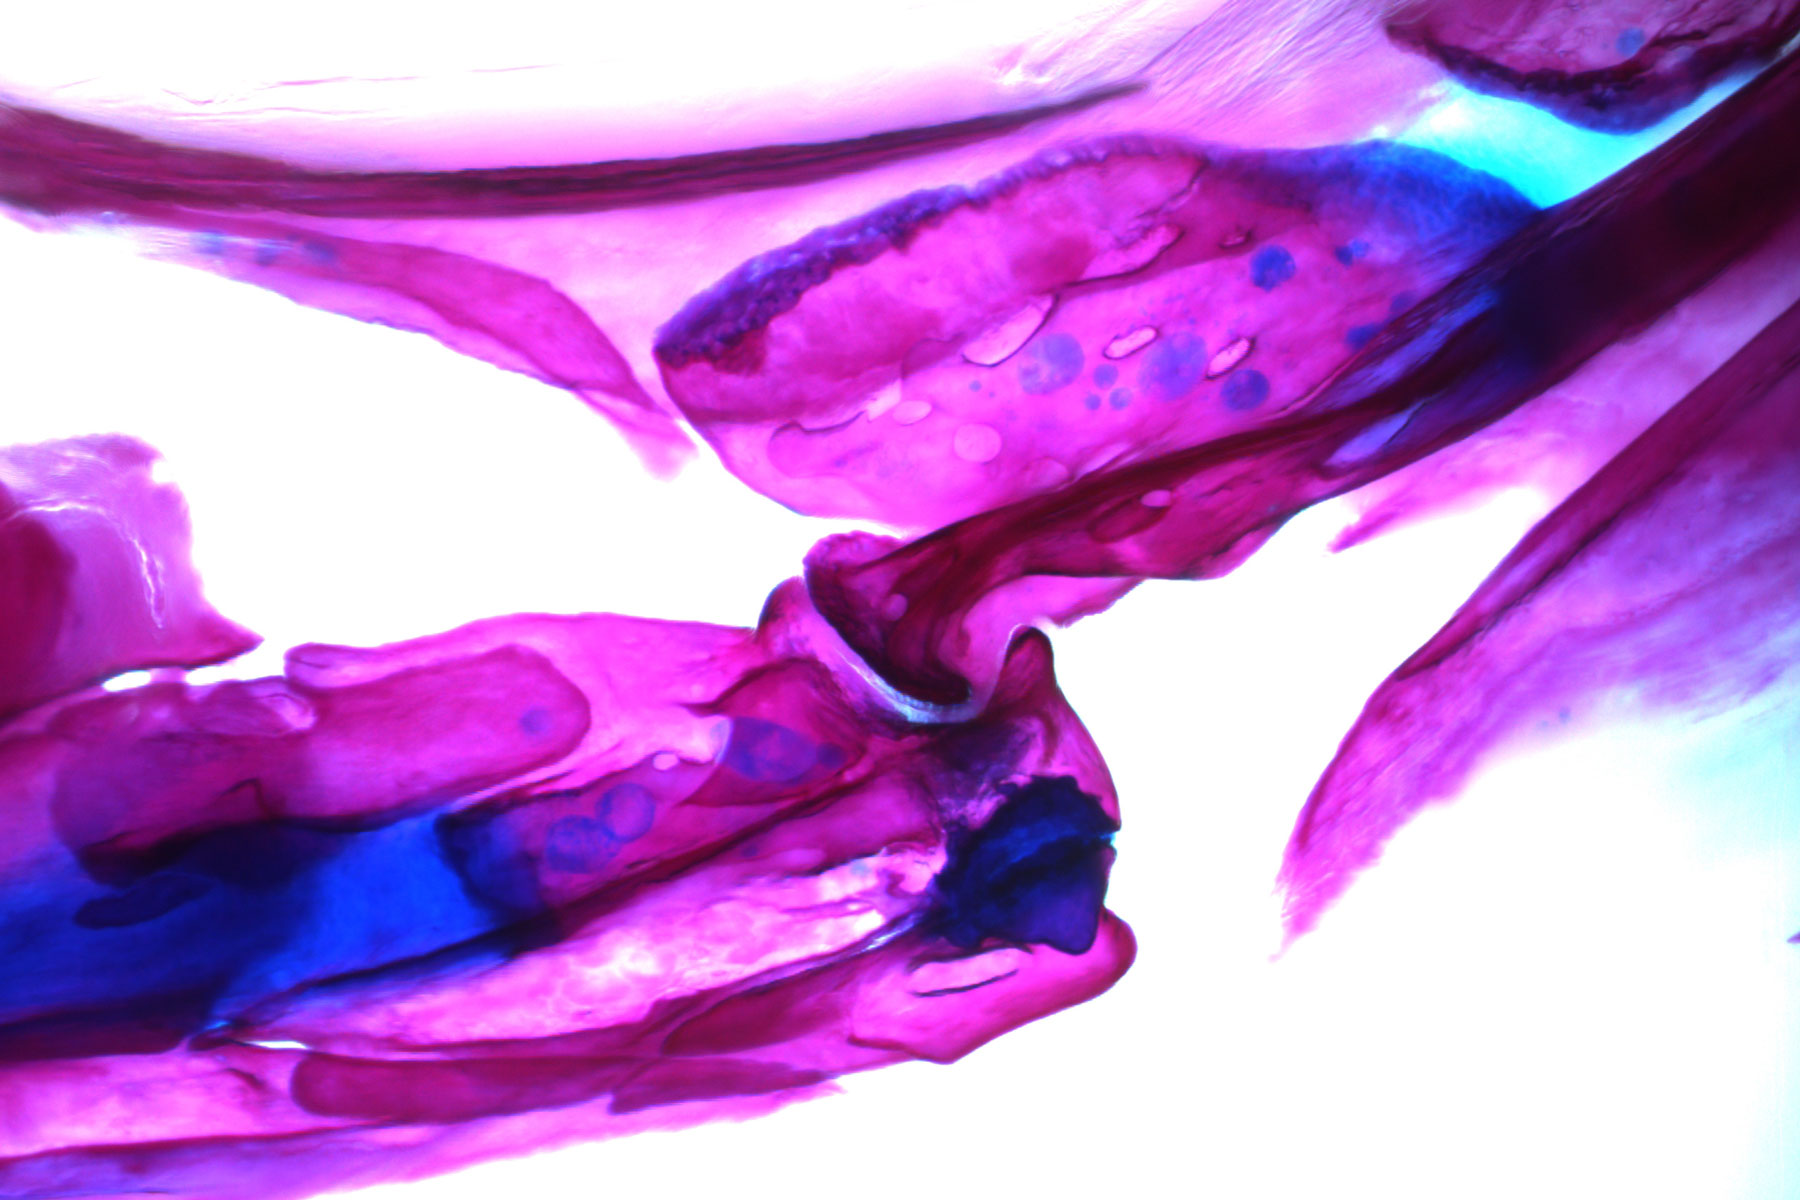 Researchers found that removing the Lubricin gene from the zebrafish genome results in arthritis in their jaws and fins. (Photo/Amjad Askary)